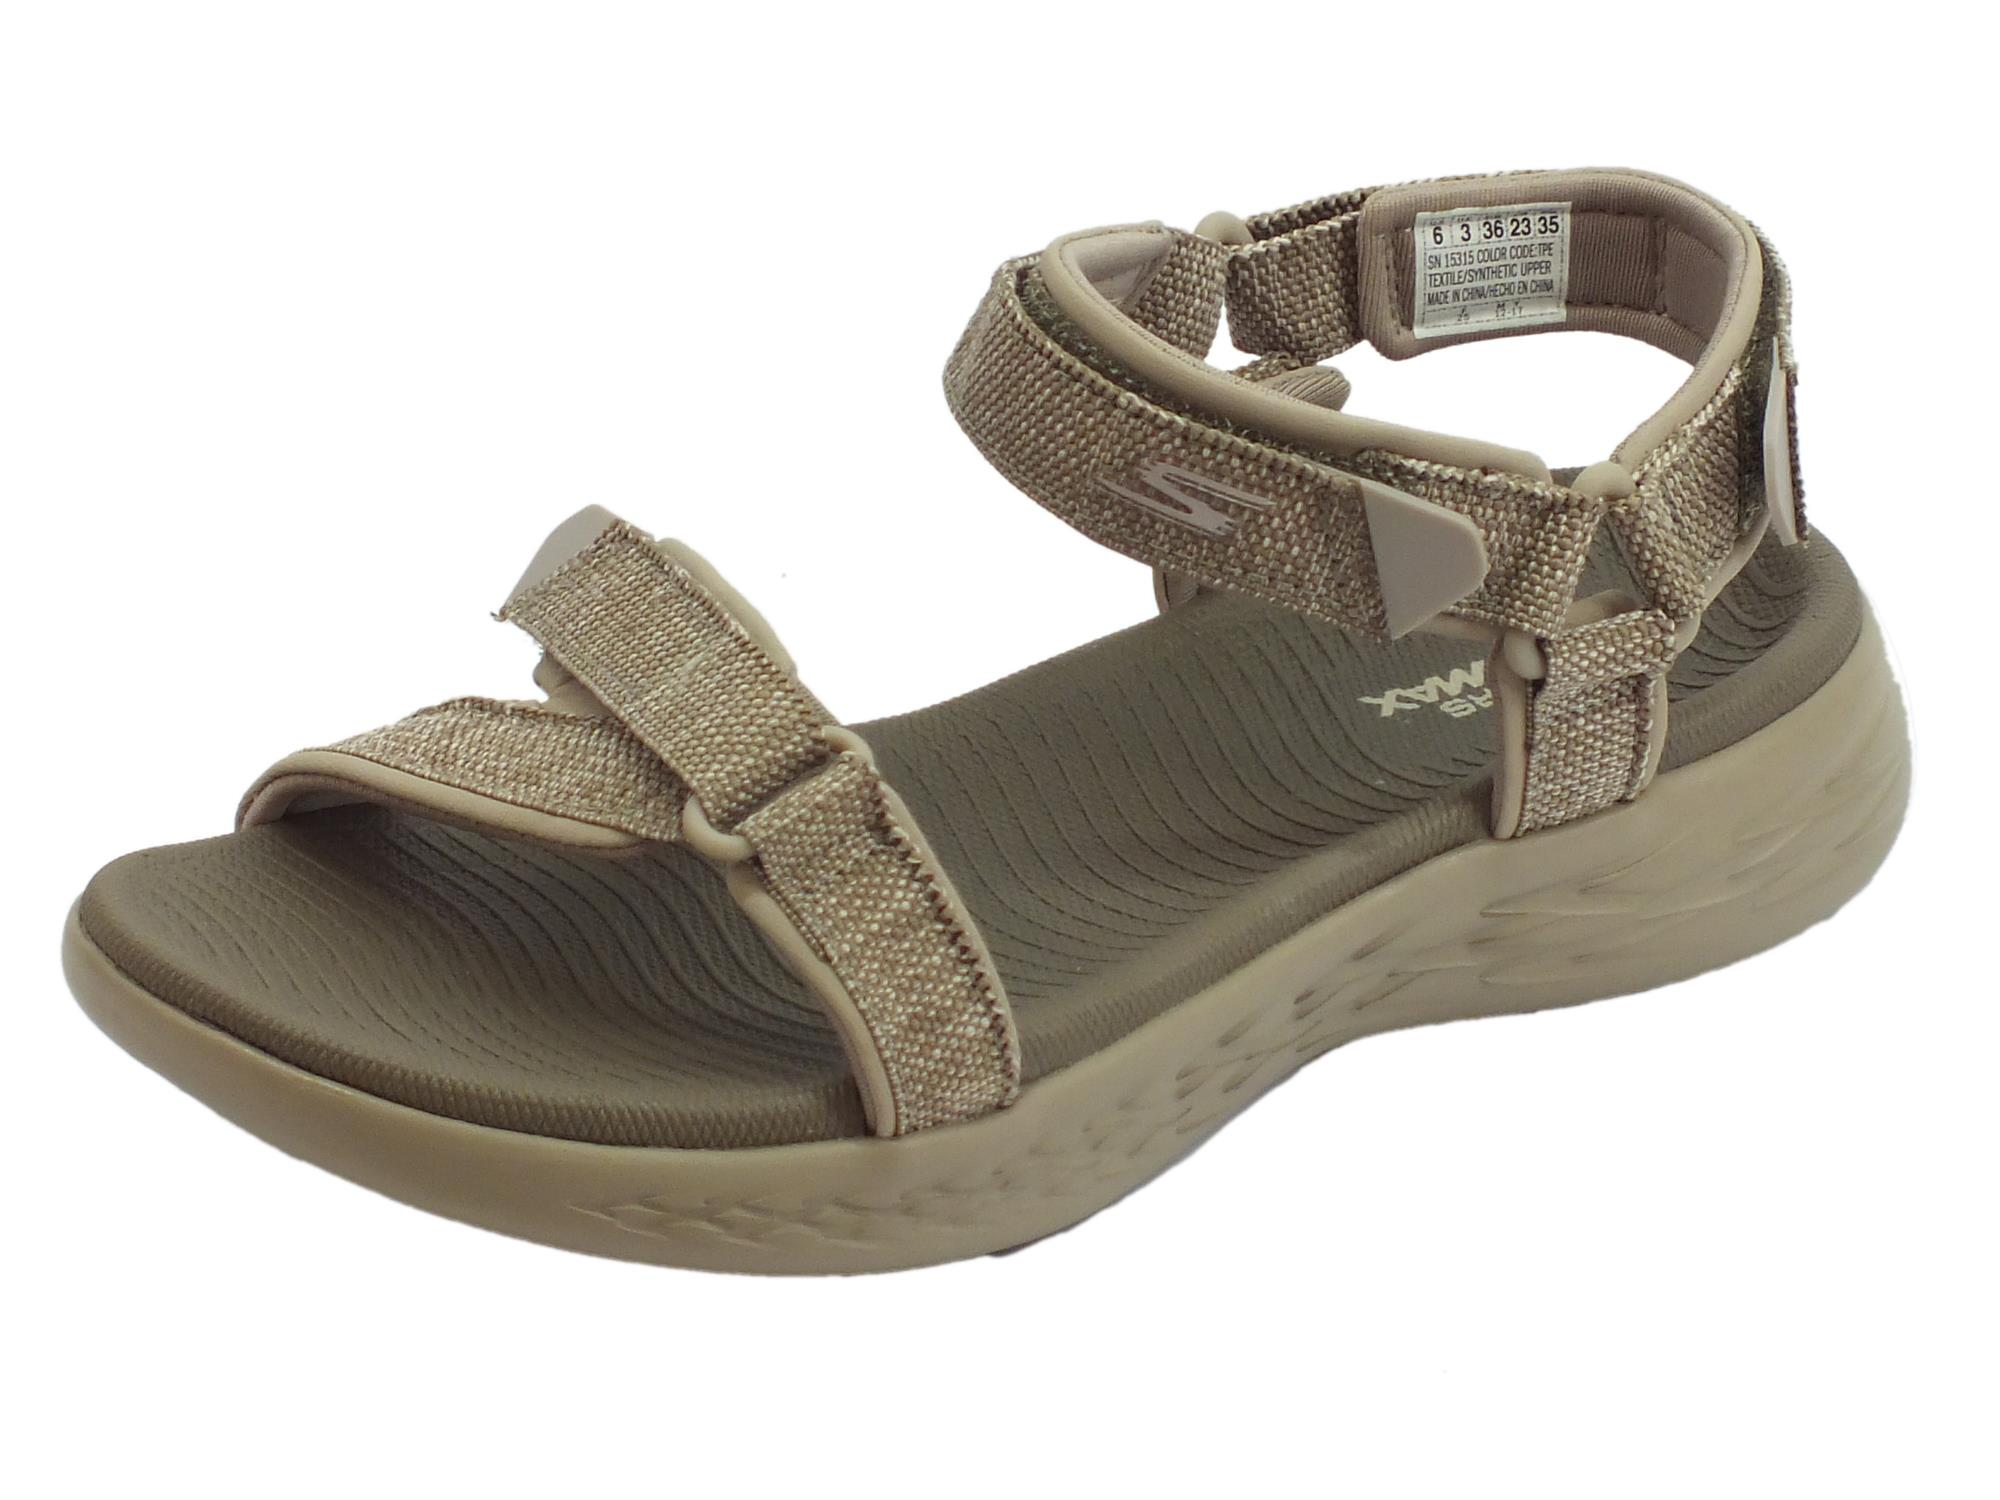 Sandali Radiant Skechers on the go per donna in tessuto taupe zeppa bassa